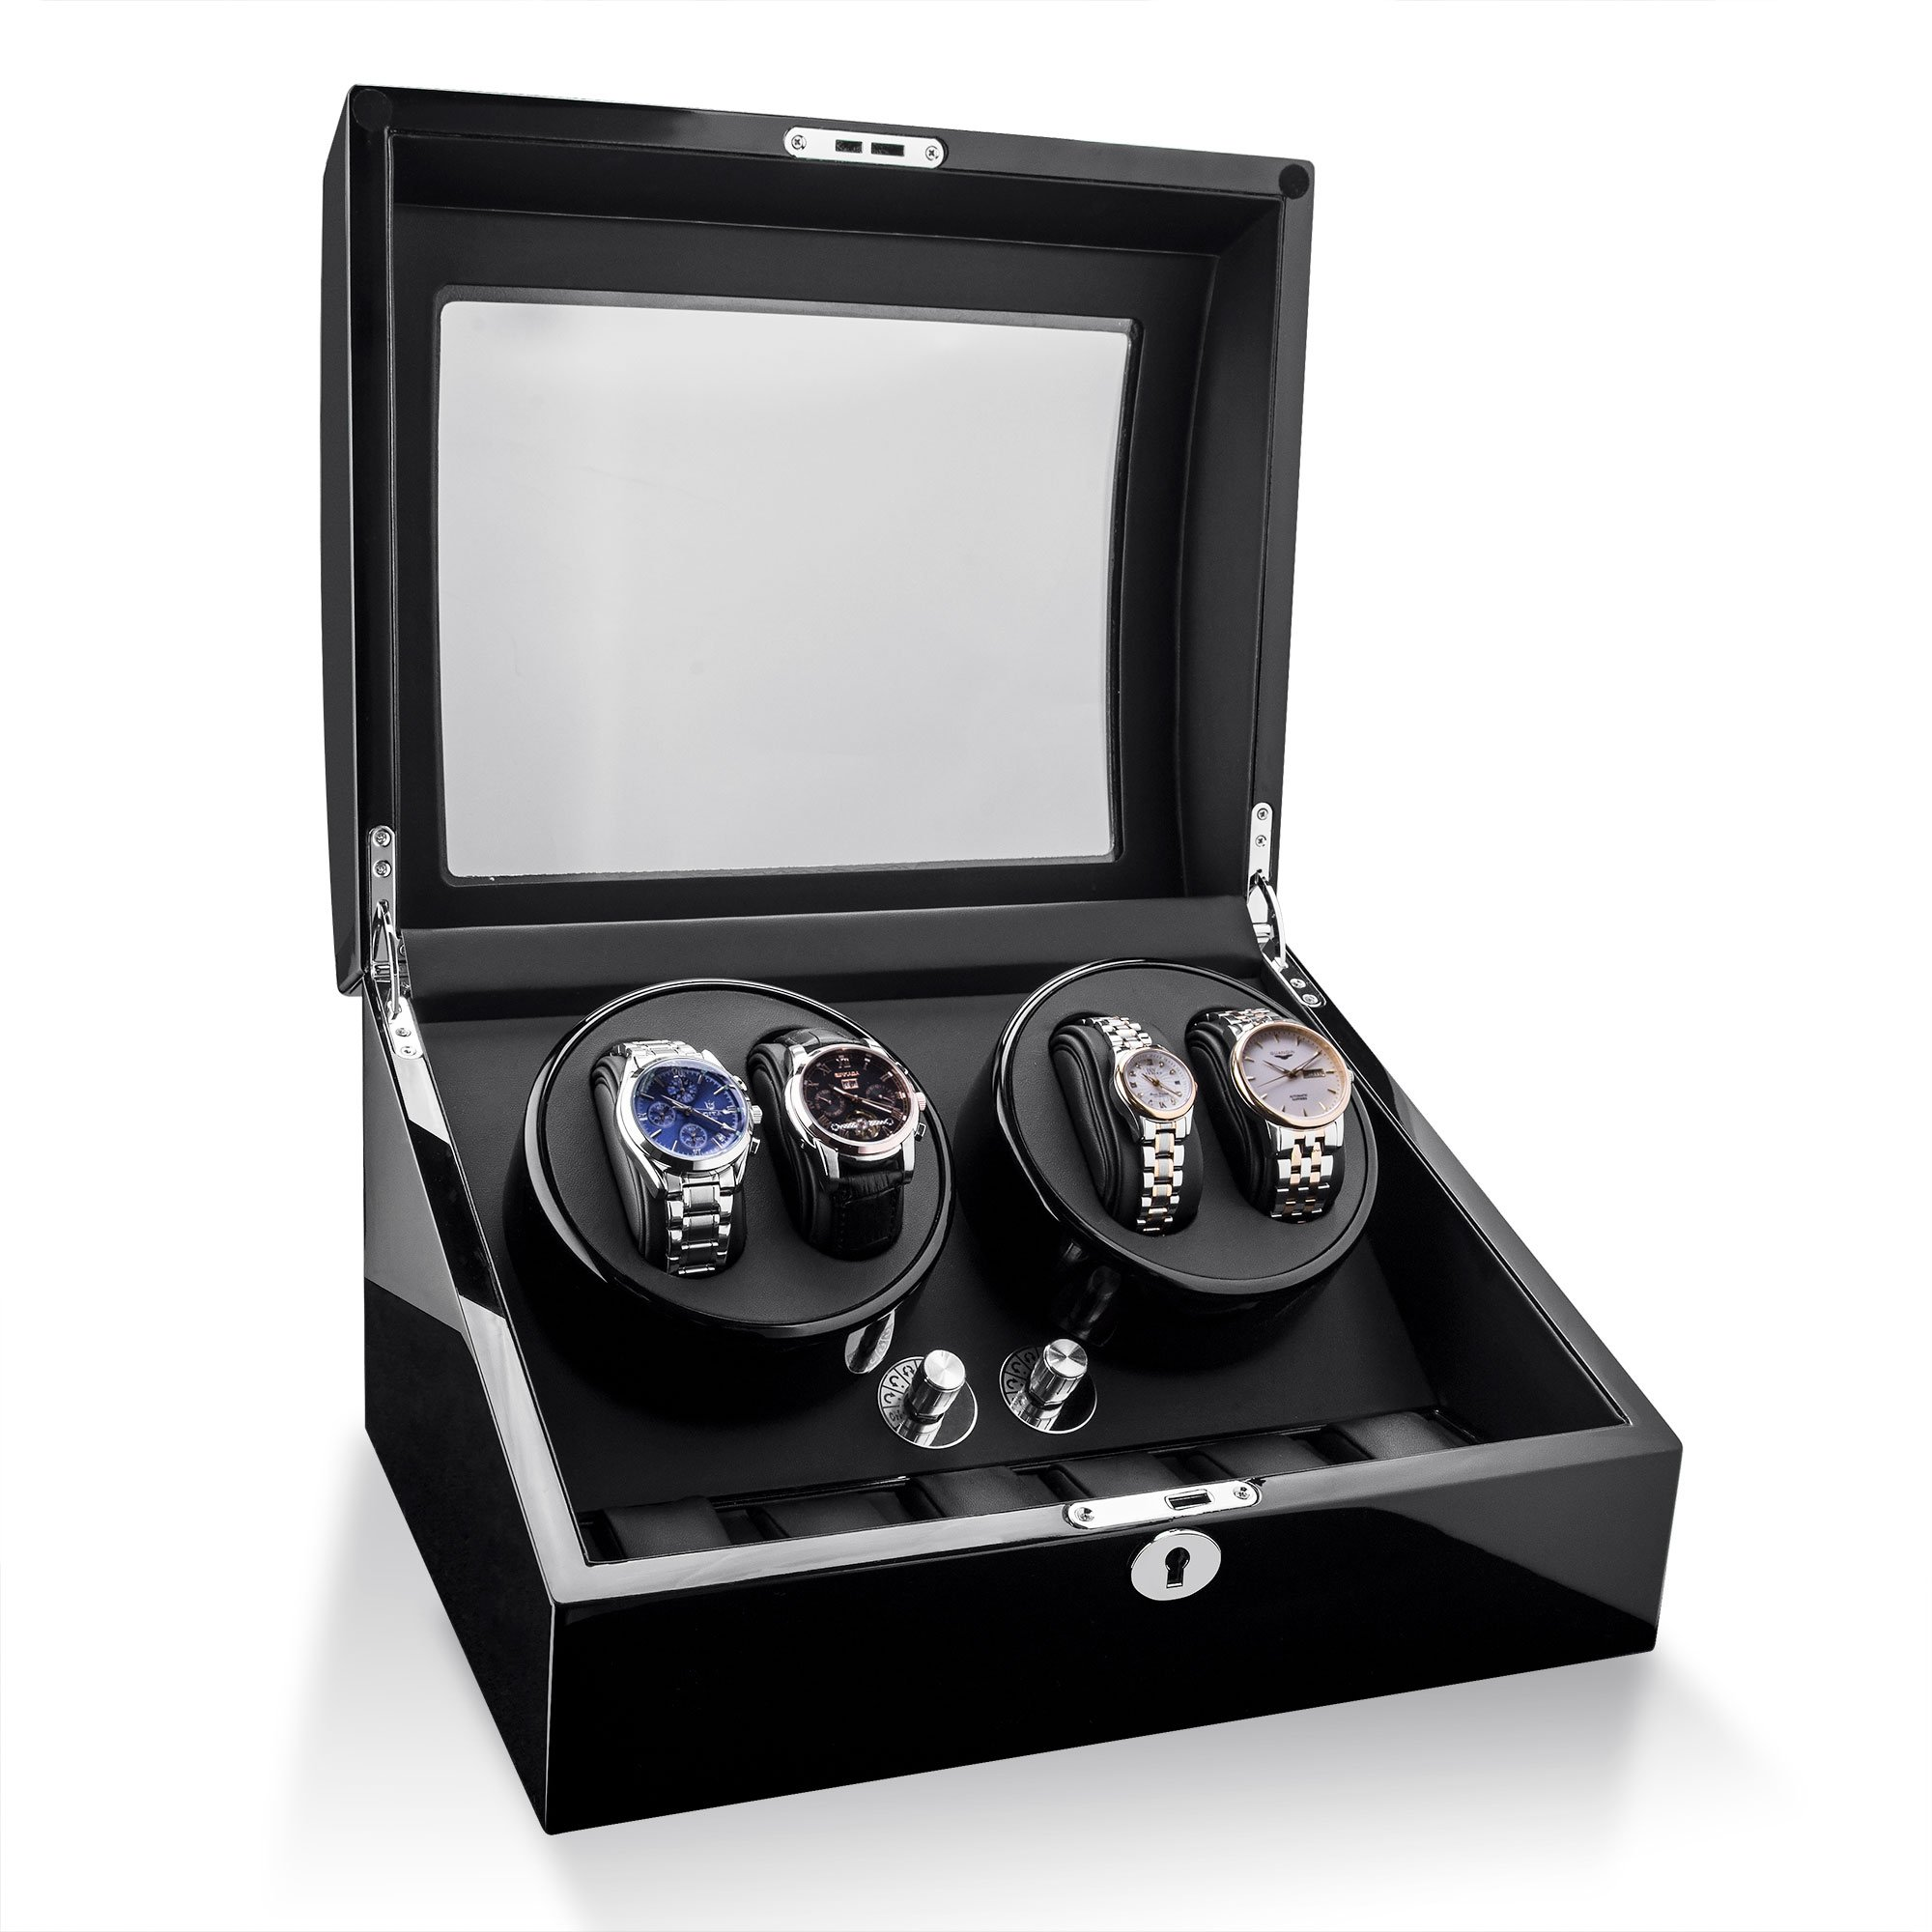 Watch Winder For Rolex Automatic Watches,Wood Shell + Piano Paint +Japanese Motor by TRIPLE TREE (Image #3)